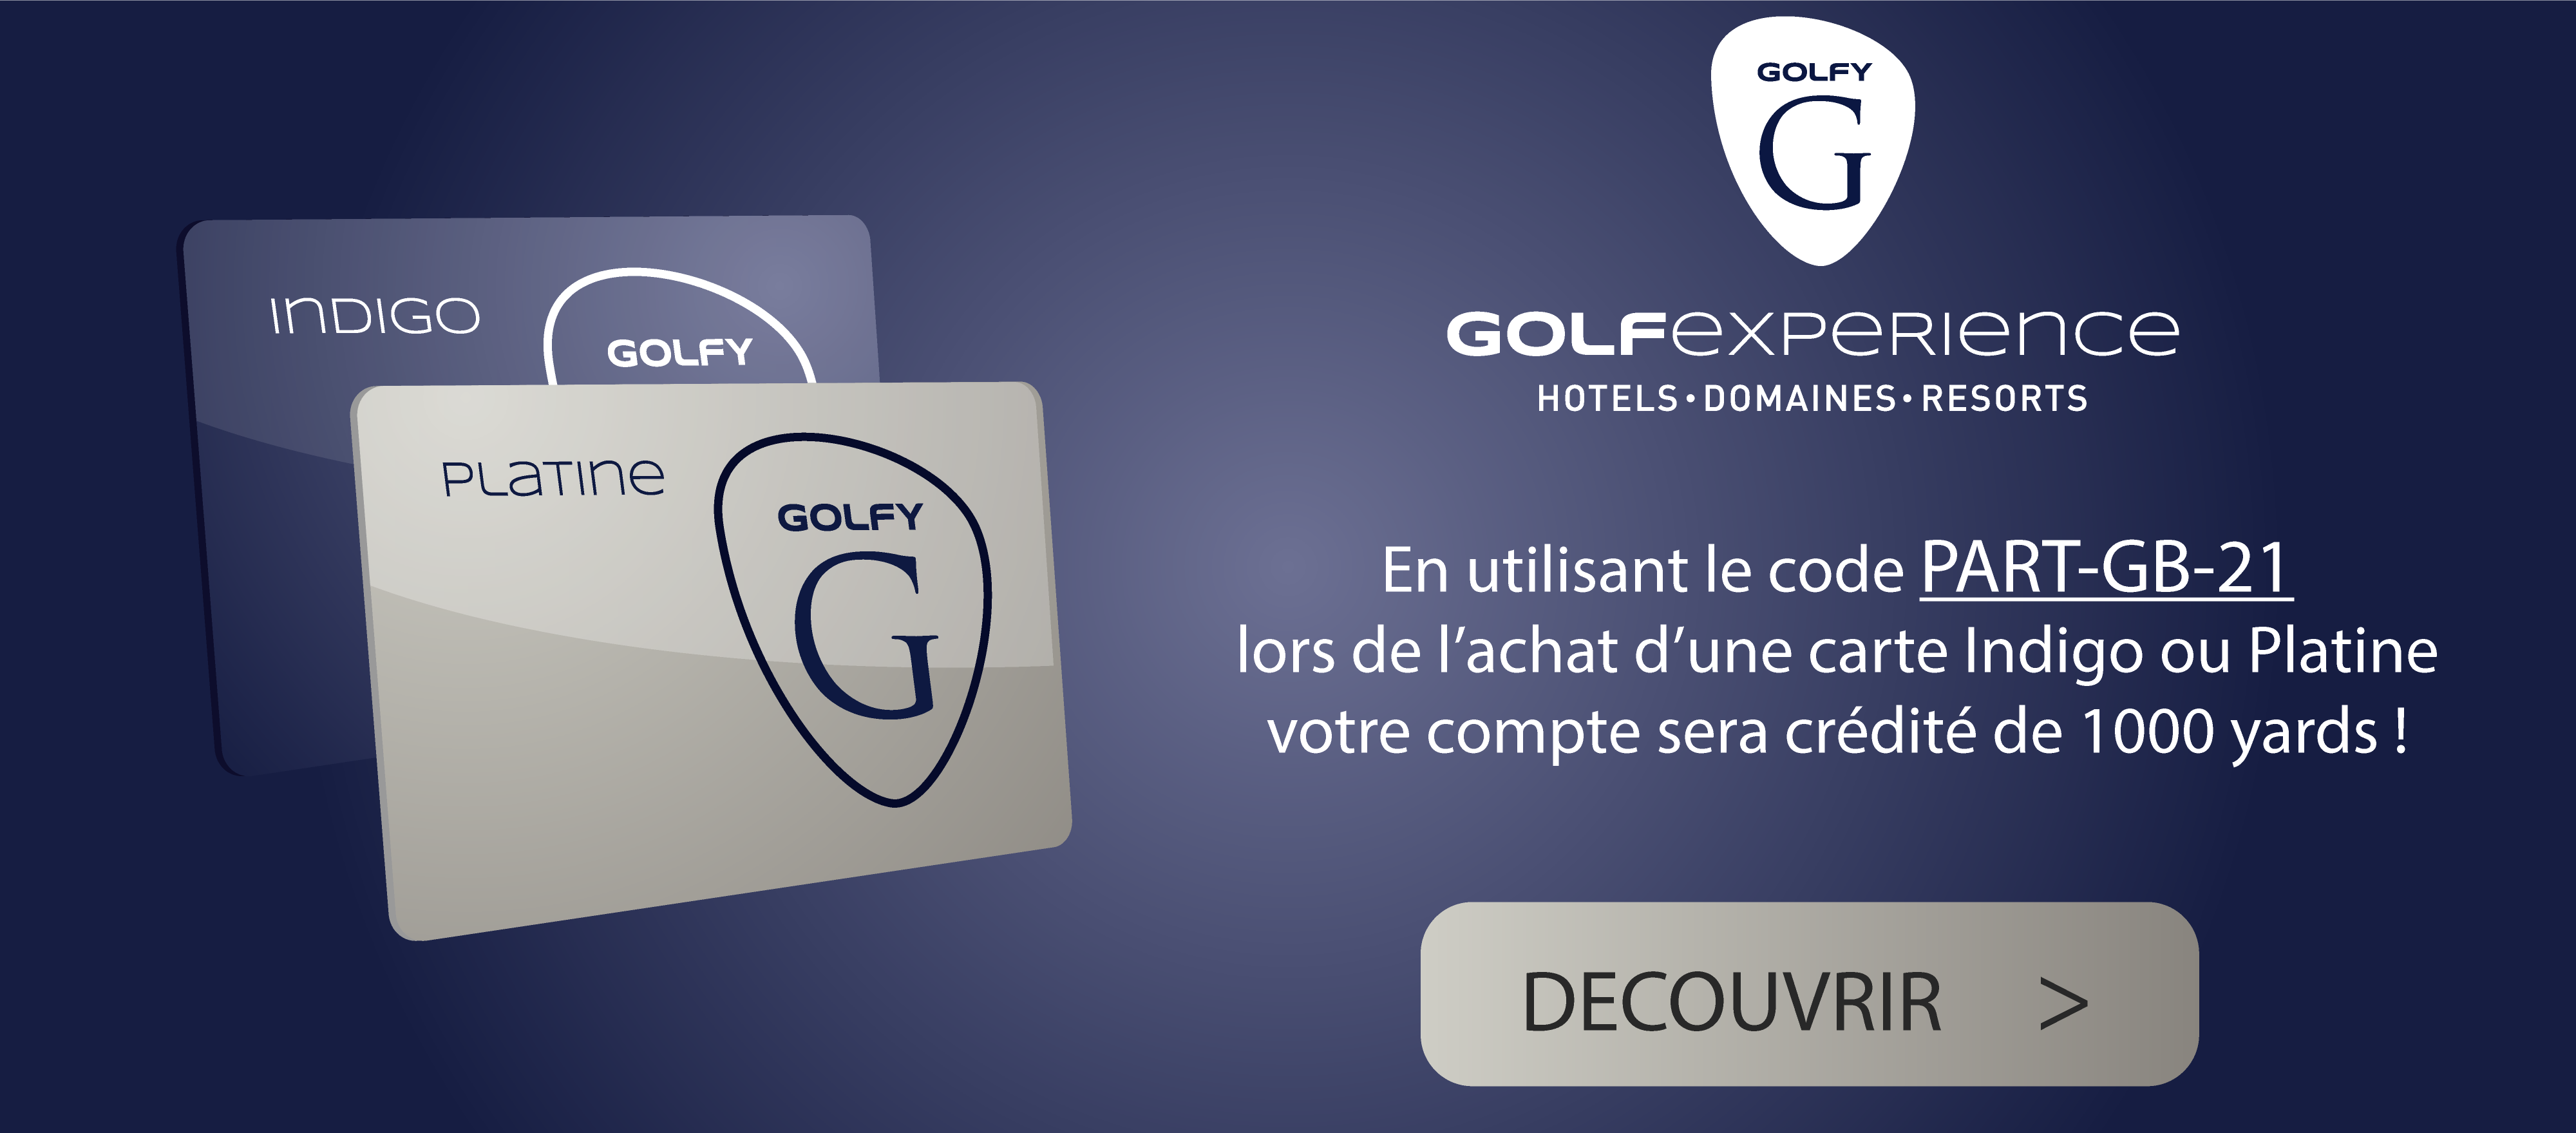 golfy code promo GB-PART-21